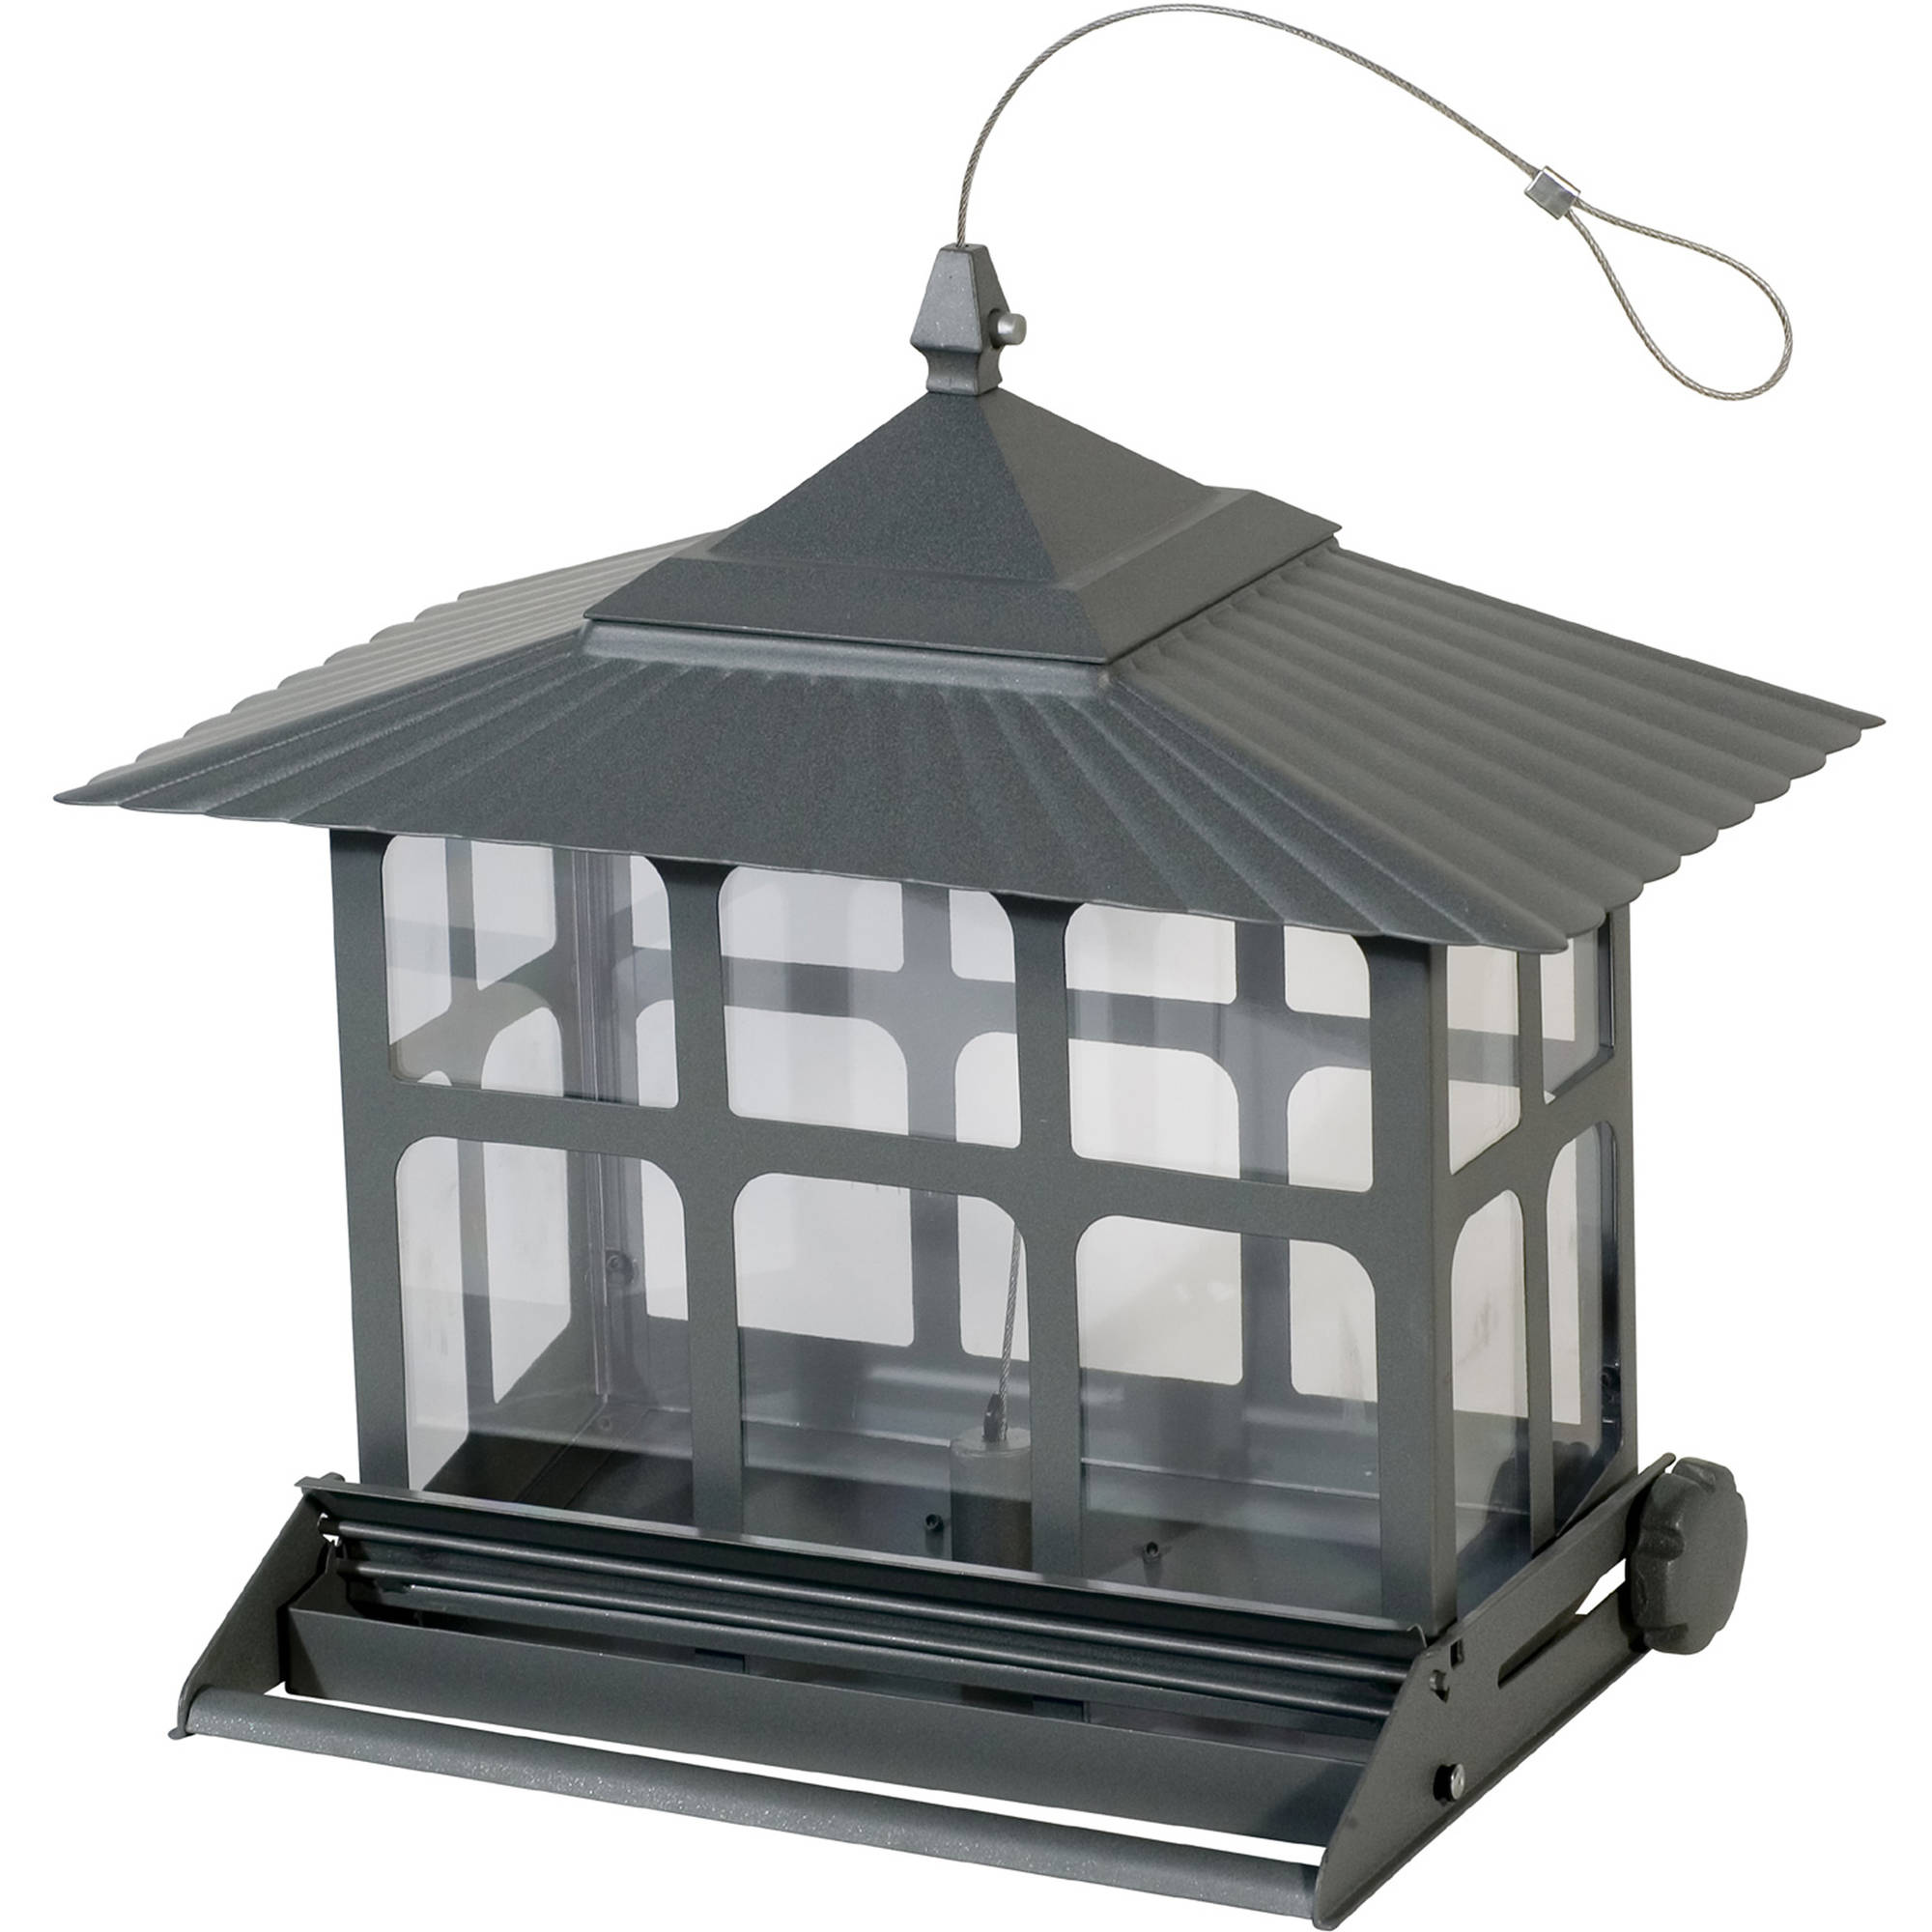 Perky-Pet 12 lb Squirrel-Be-Gone II Wild Bird Feeder